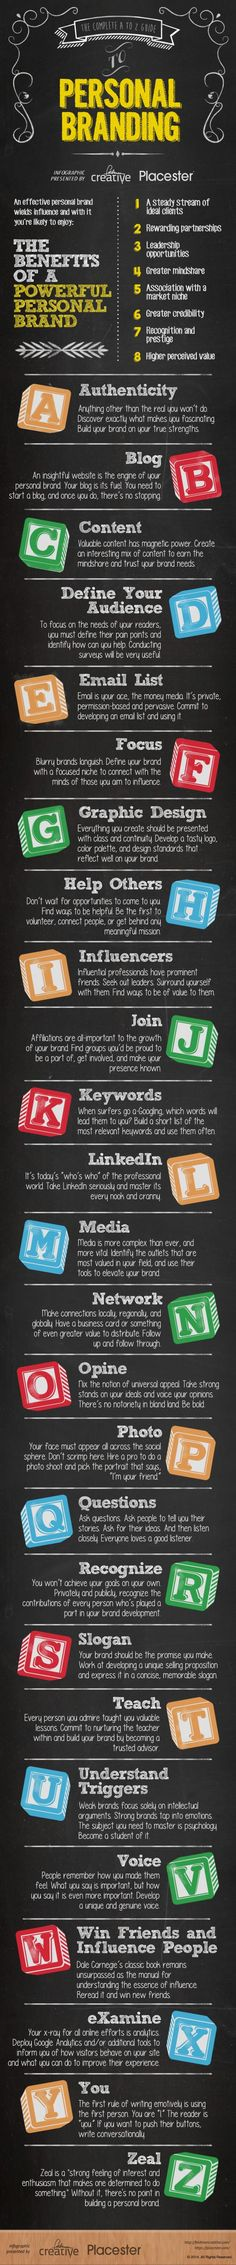 The A to Z of Personal Branding